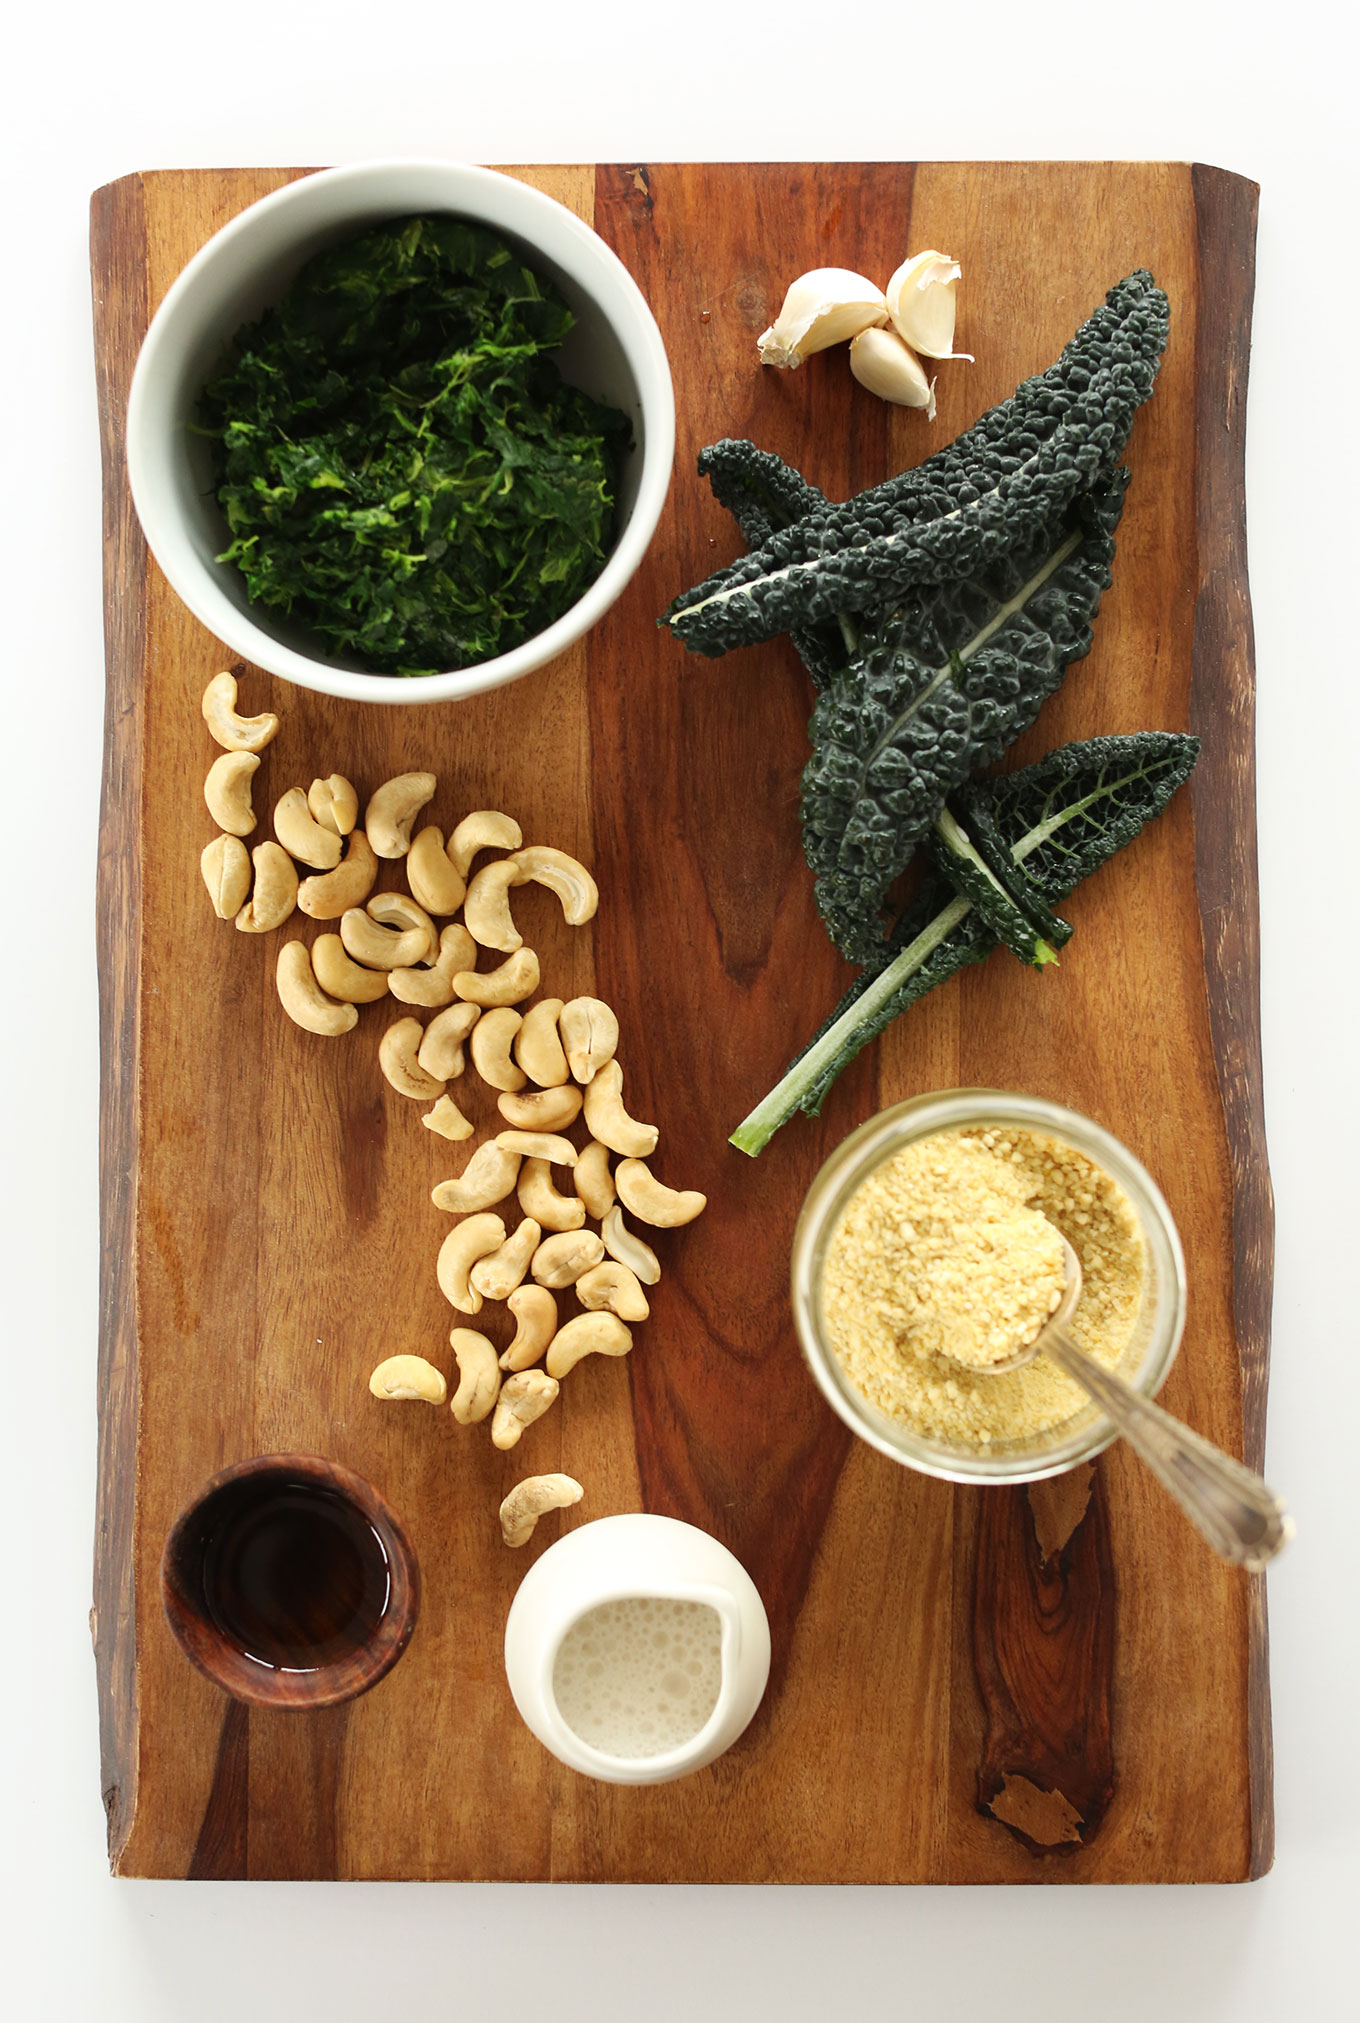 Ingredients for making our Kale and Spinach Dip for a healthy vegan appetizer